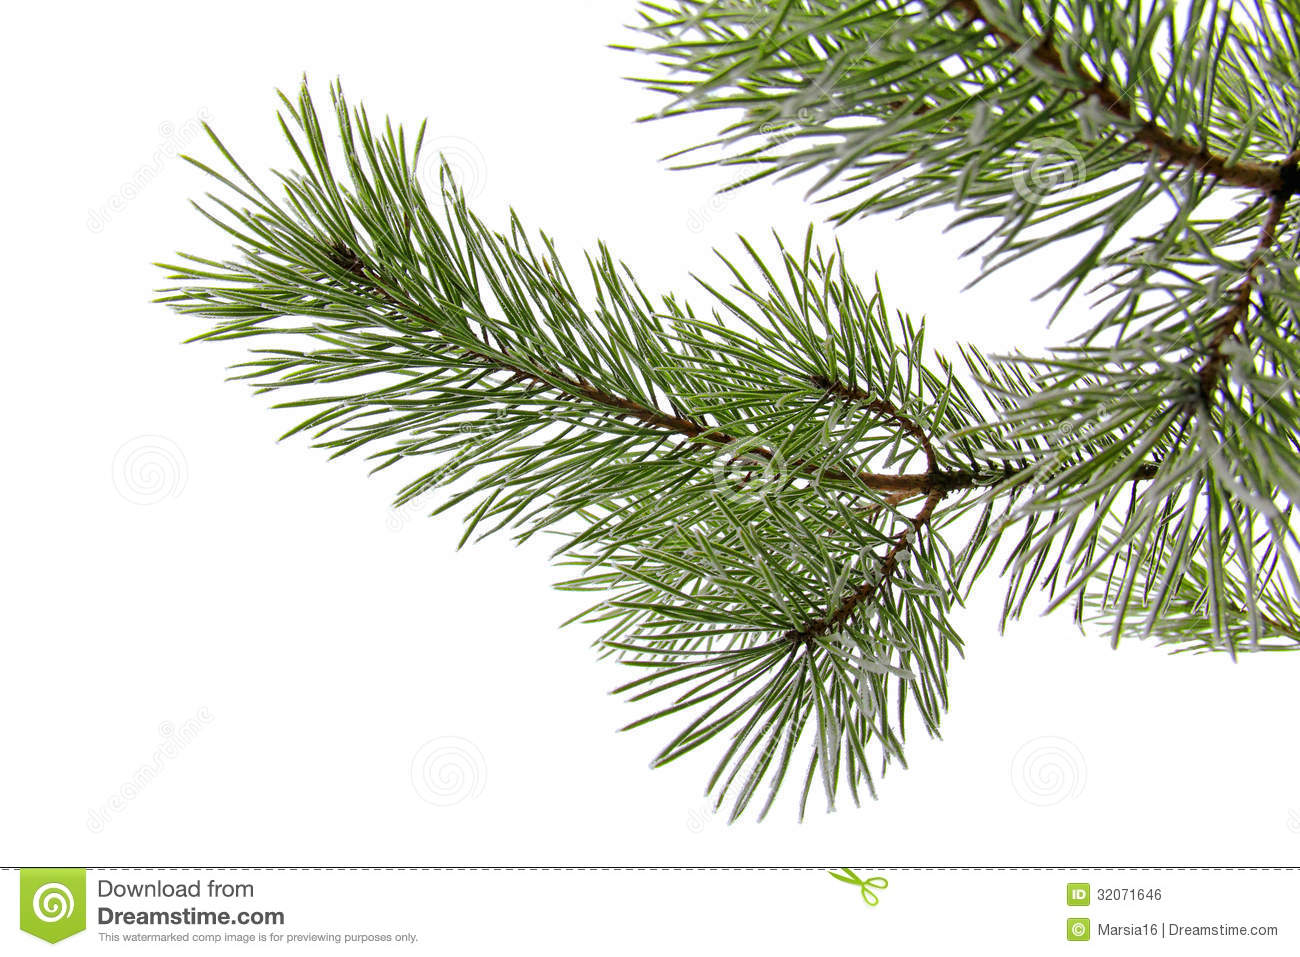 Snowy Pine Branch On White Royalty Free Stock Image - Image: 32071646